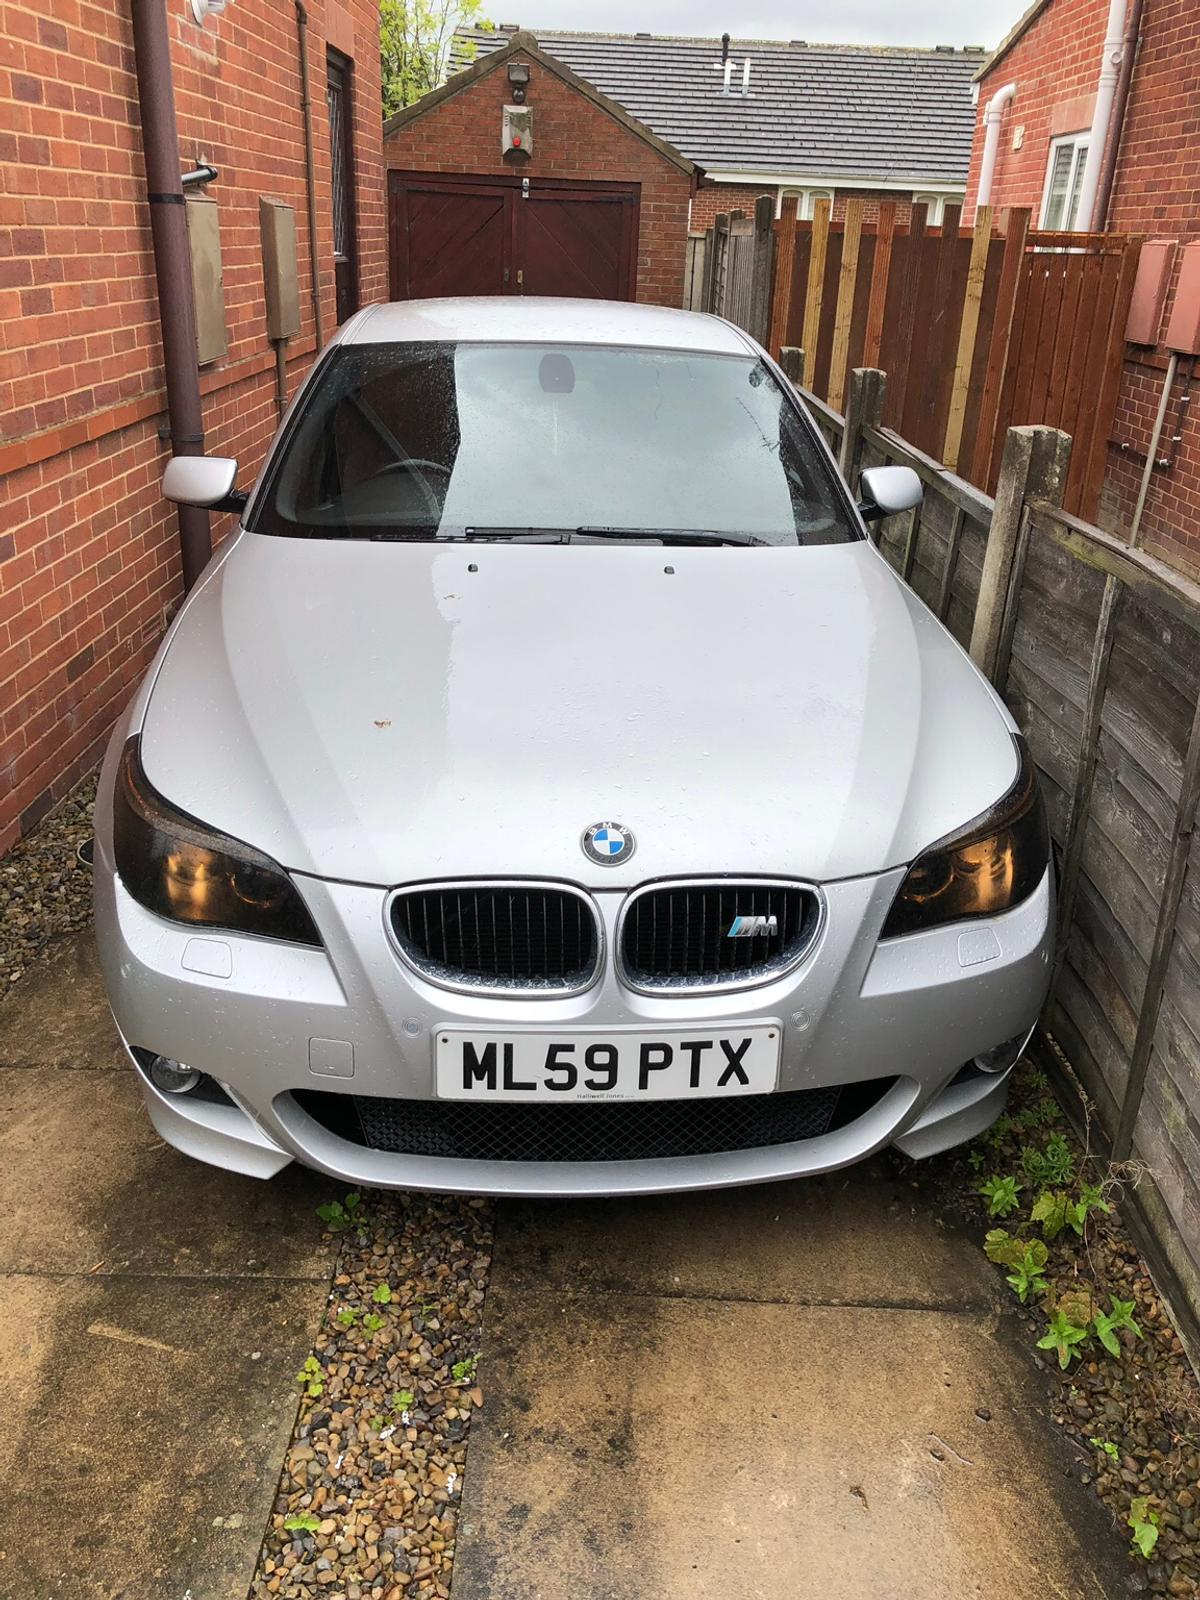 Bmw 520d M Sport LCI Business Edition in LS11 Leeds for